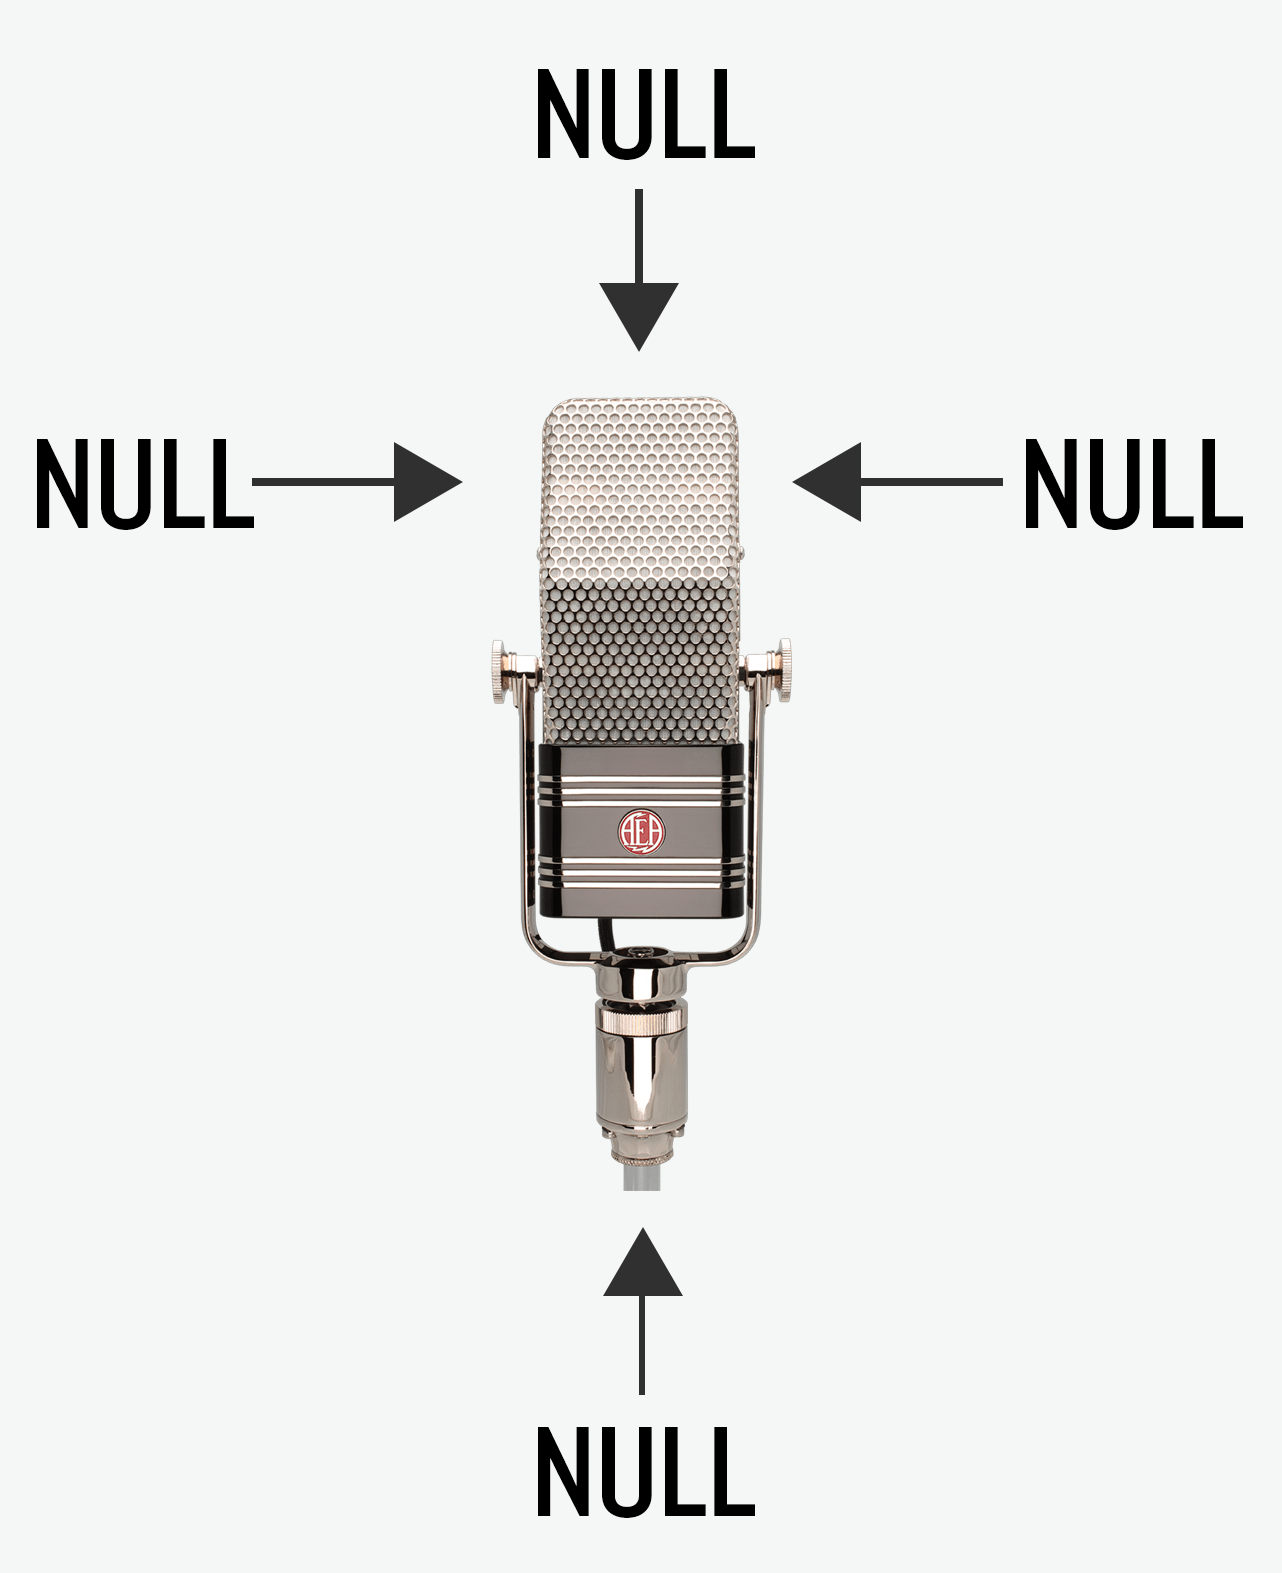 R44-Nulls-Diagram